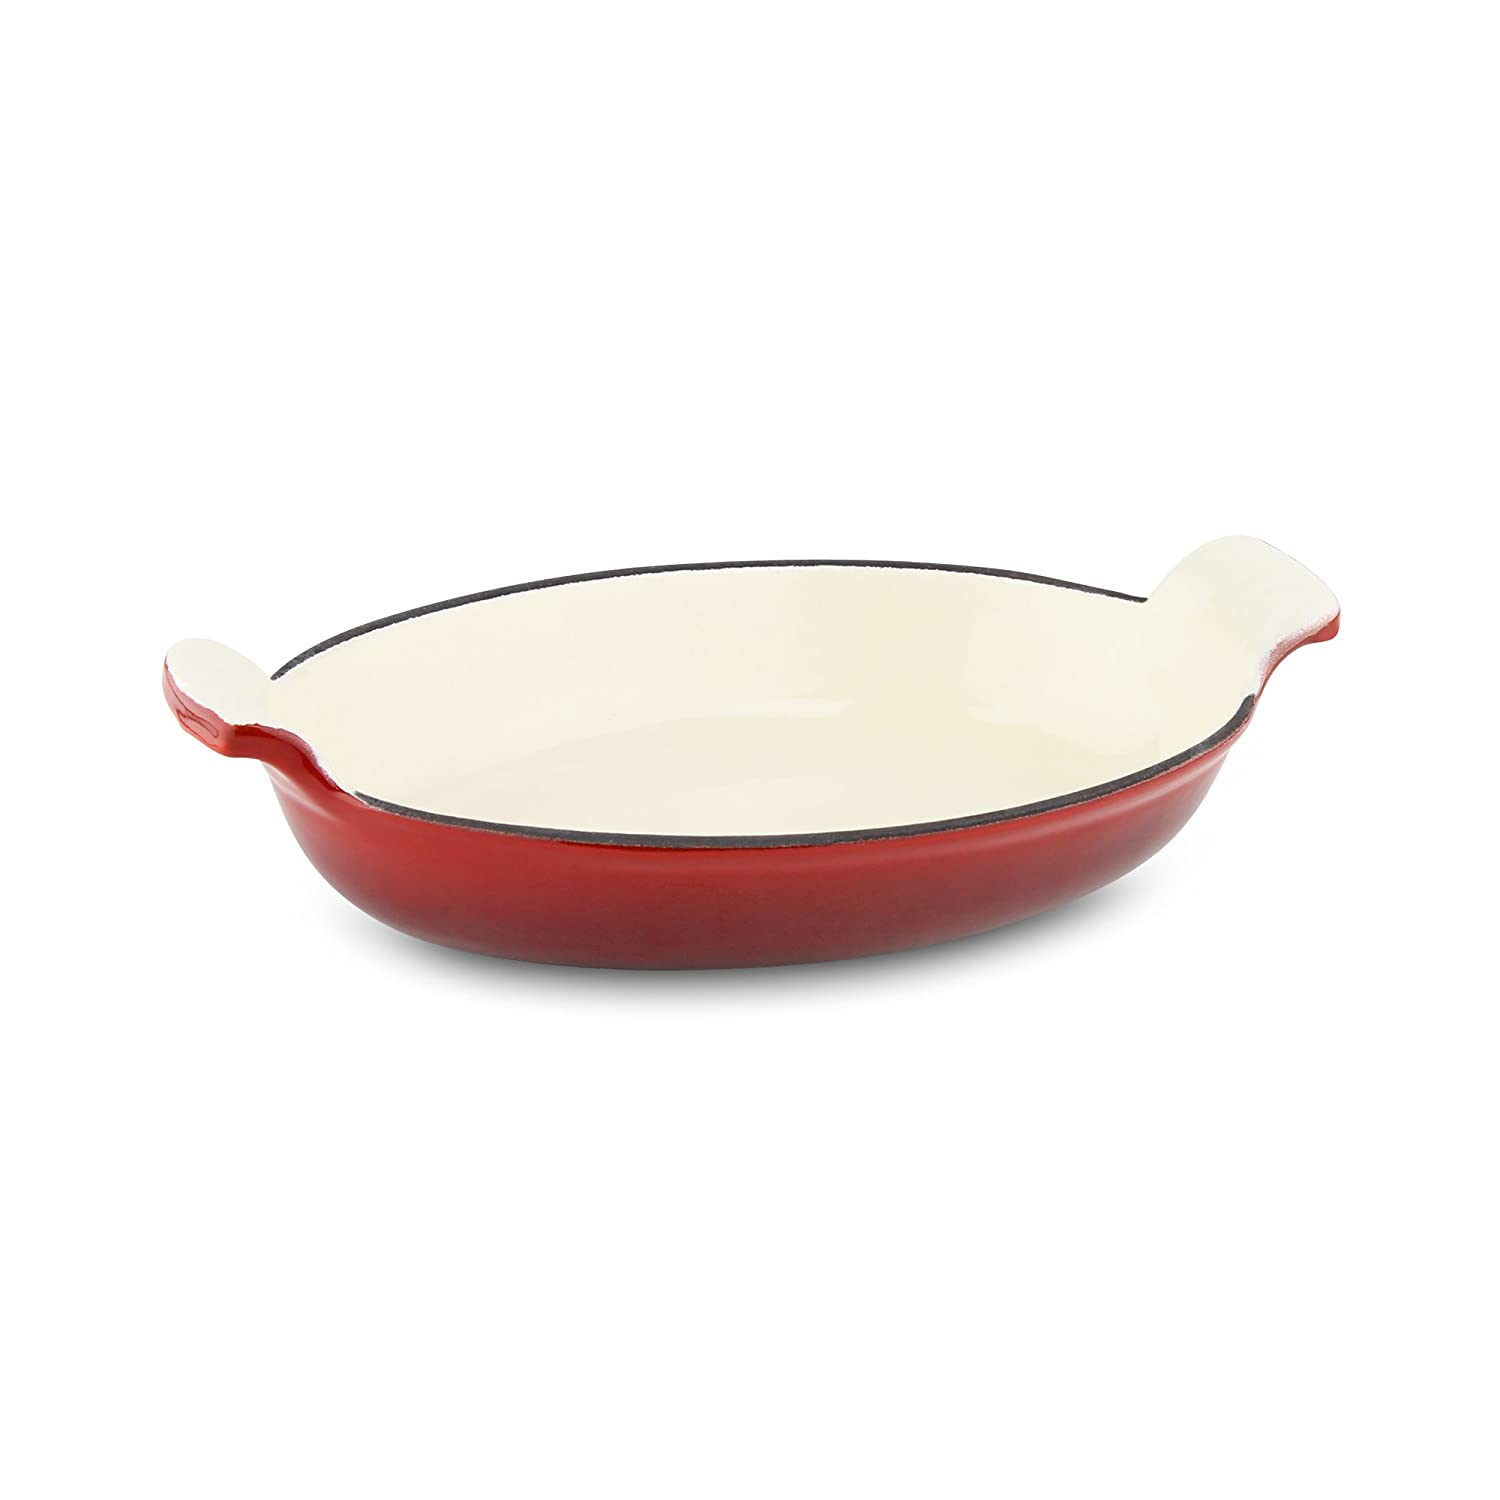 Commichef Provencale Professional Cast Iron Oval Gratin Dish, Red, 26 x 16cm, 600ml Grunwerg AGO-26R